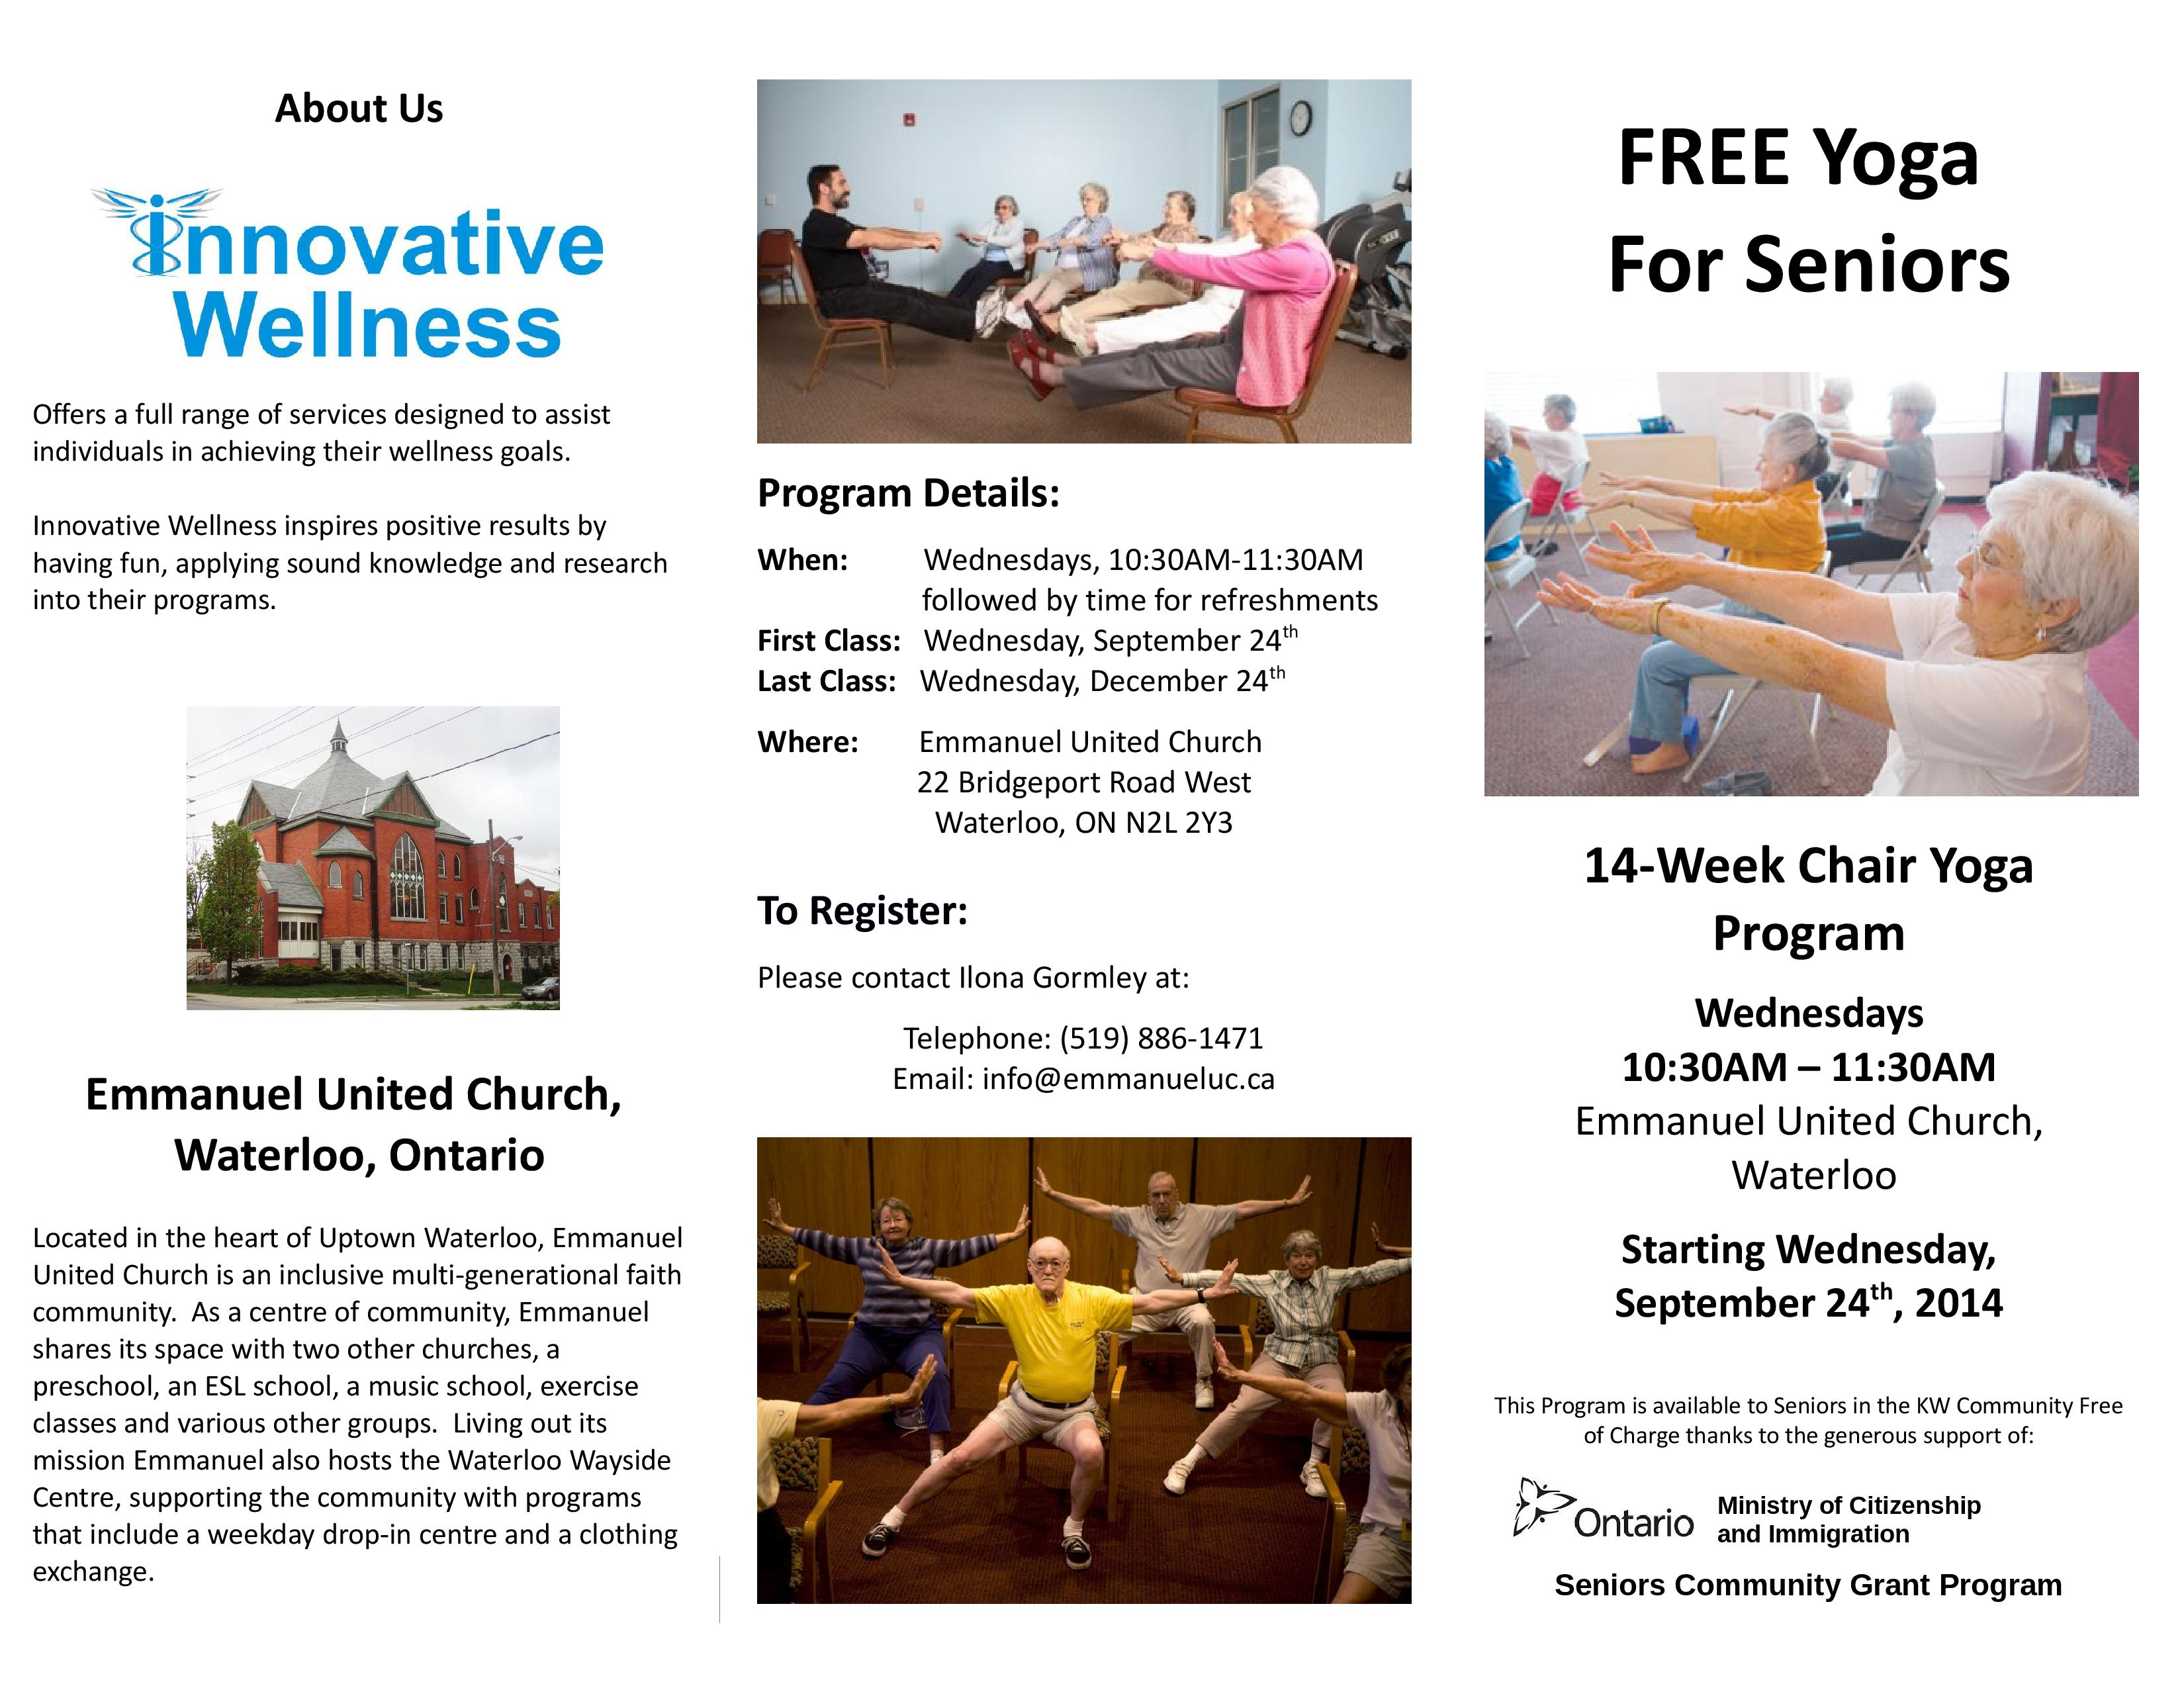 pdf for chair aetherair asli seniors co poses yoga